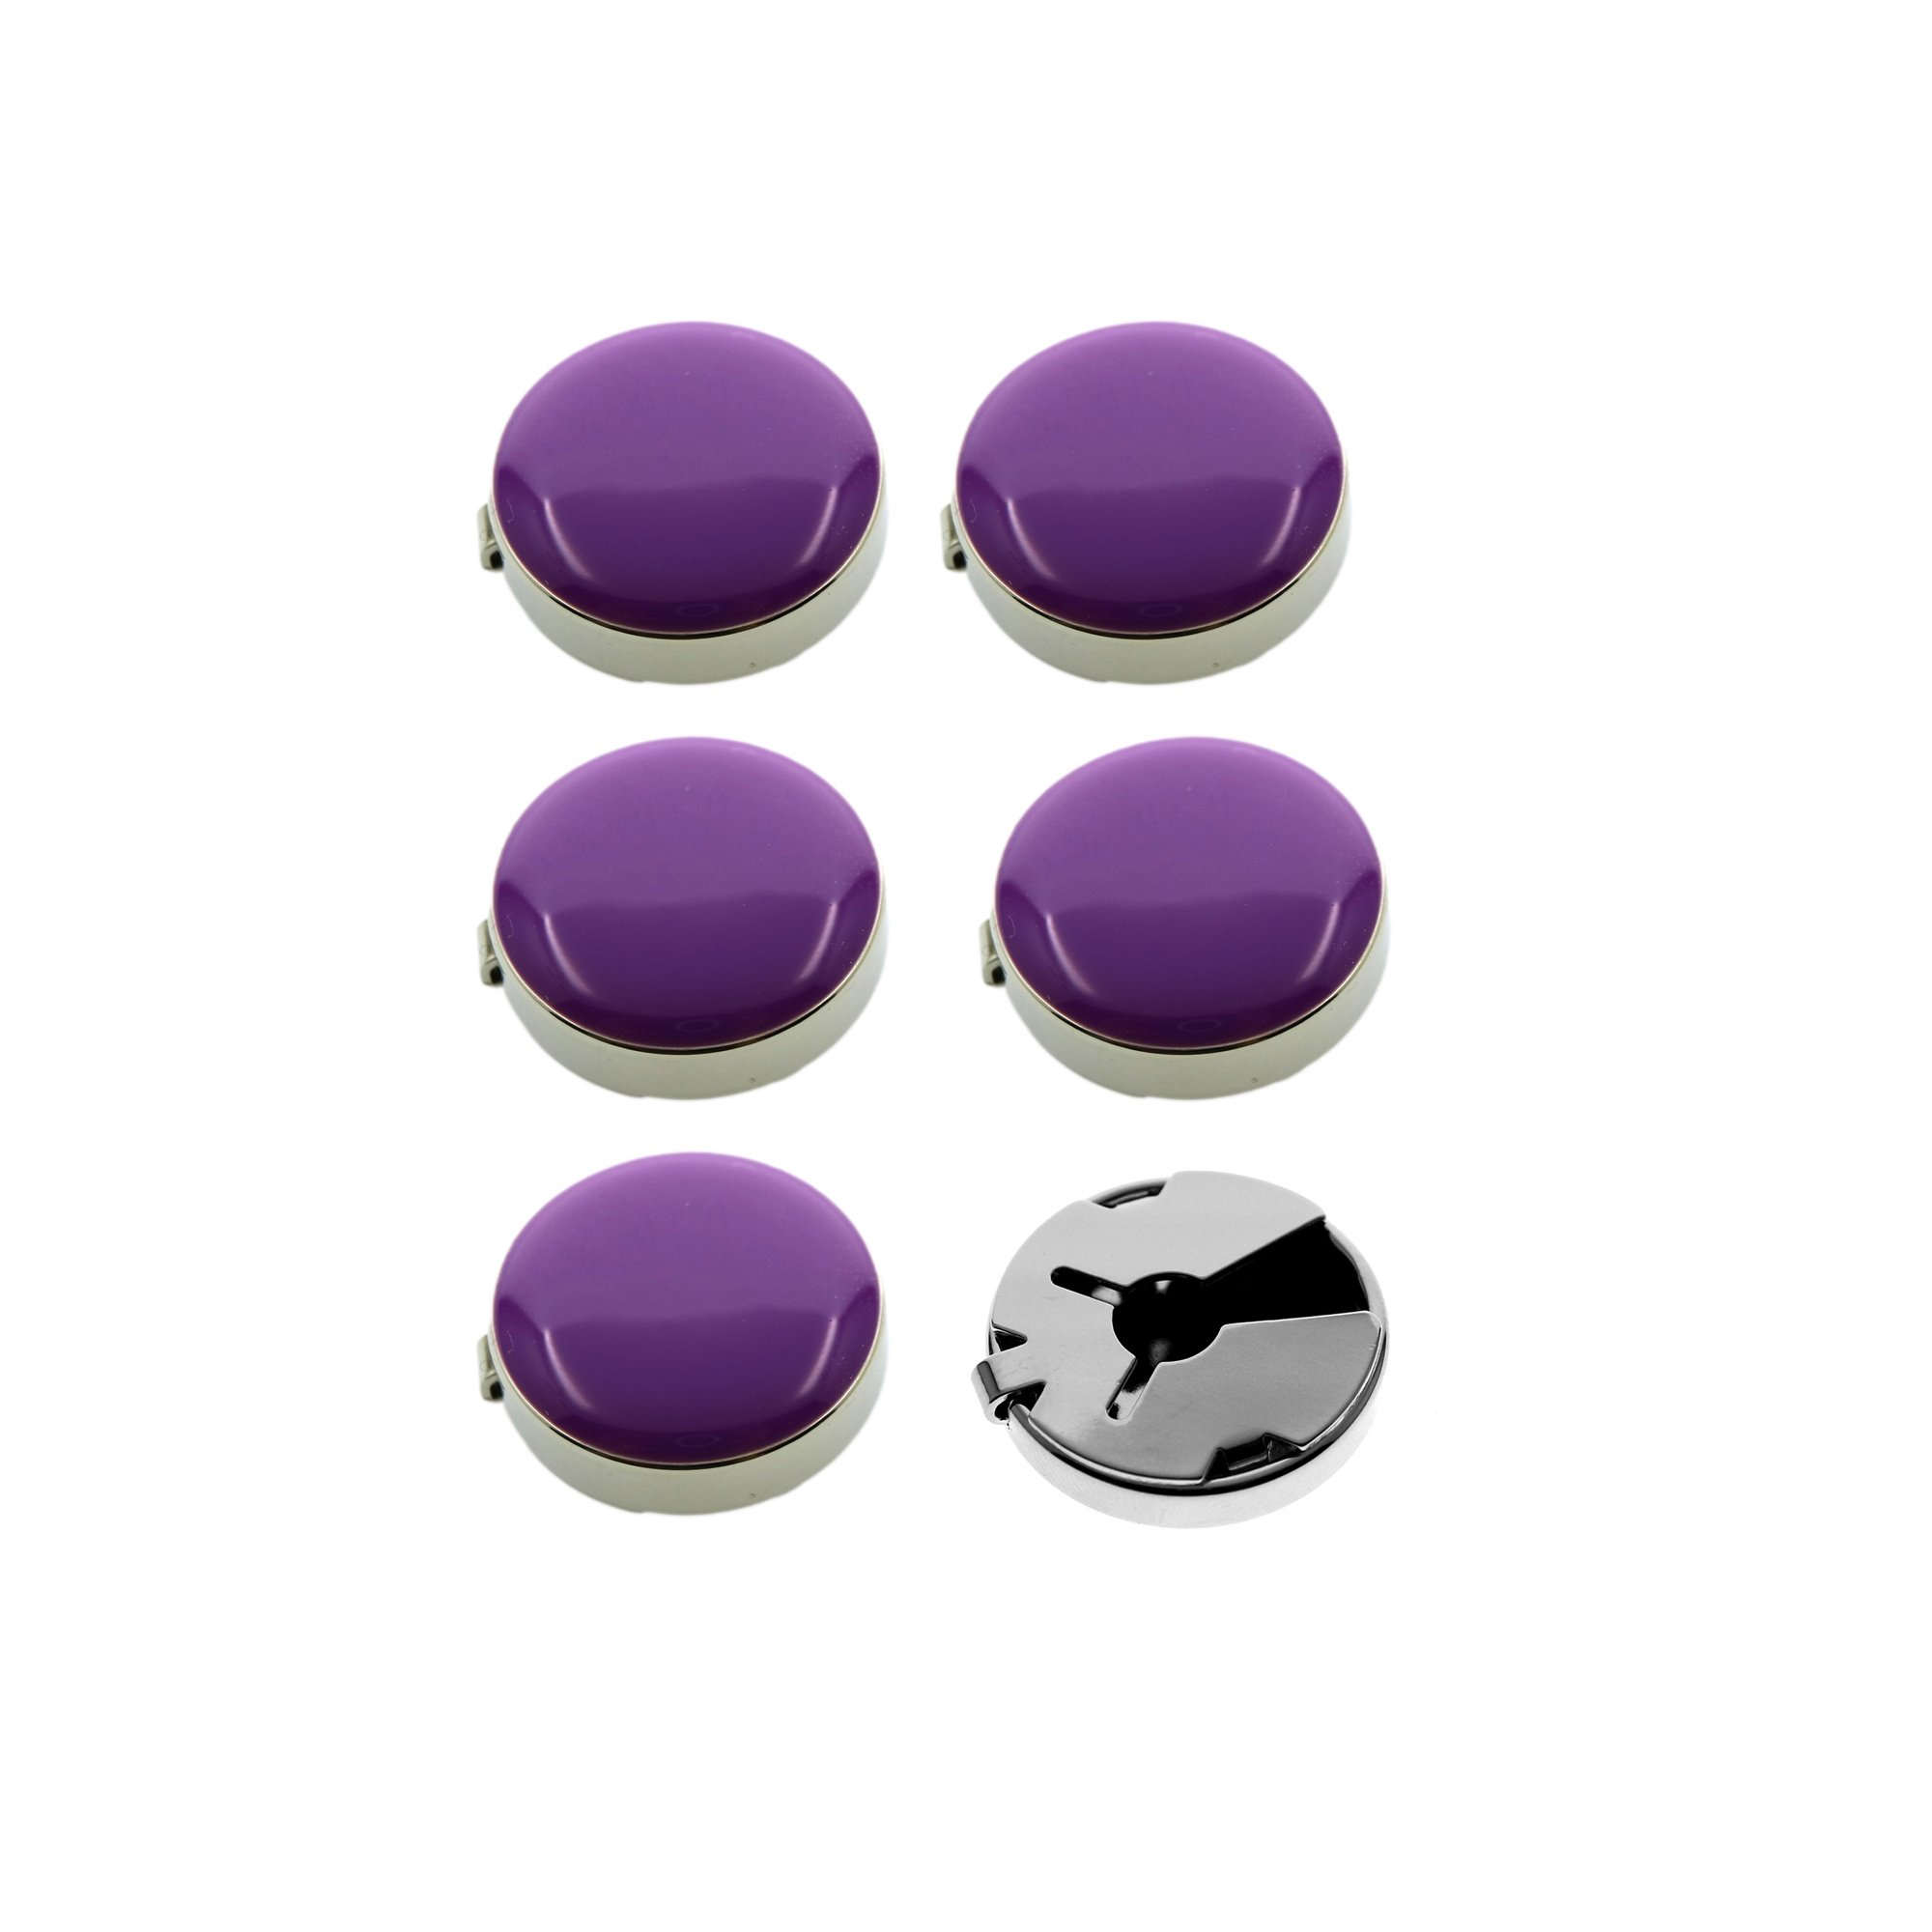 Ms.Iconic 17.5MM Purple Round Cuff Button Cover Cuff Links for Wedding Formal Shirt 6Pcs/Set (Purple)